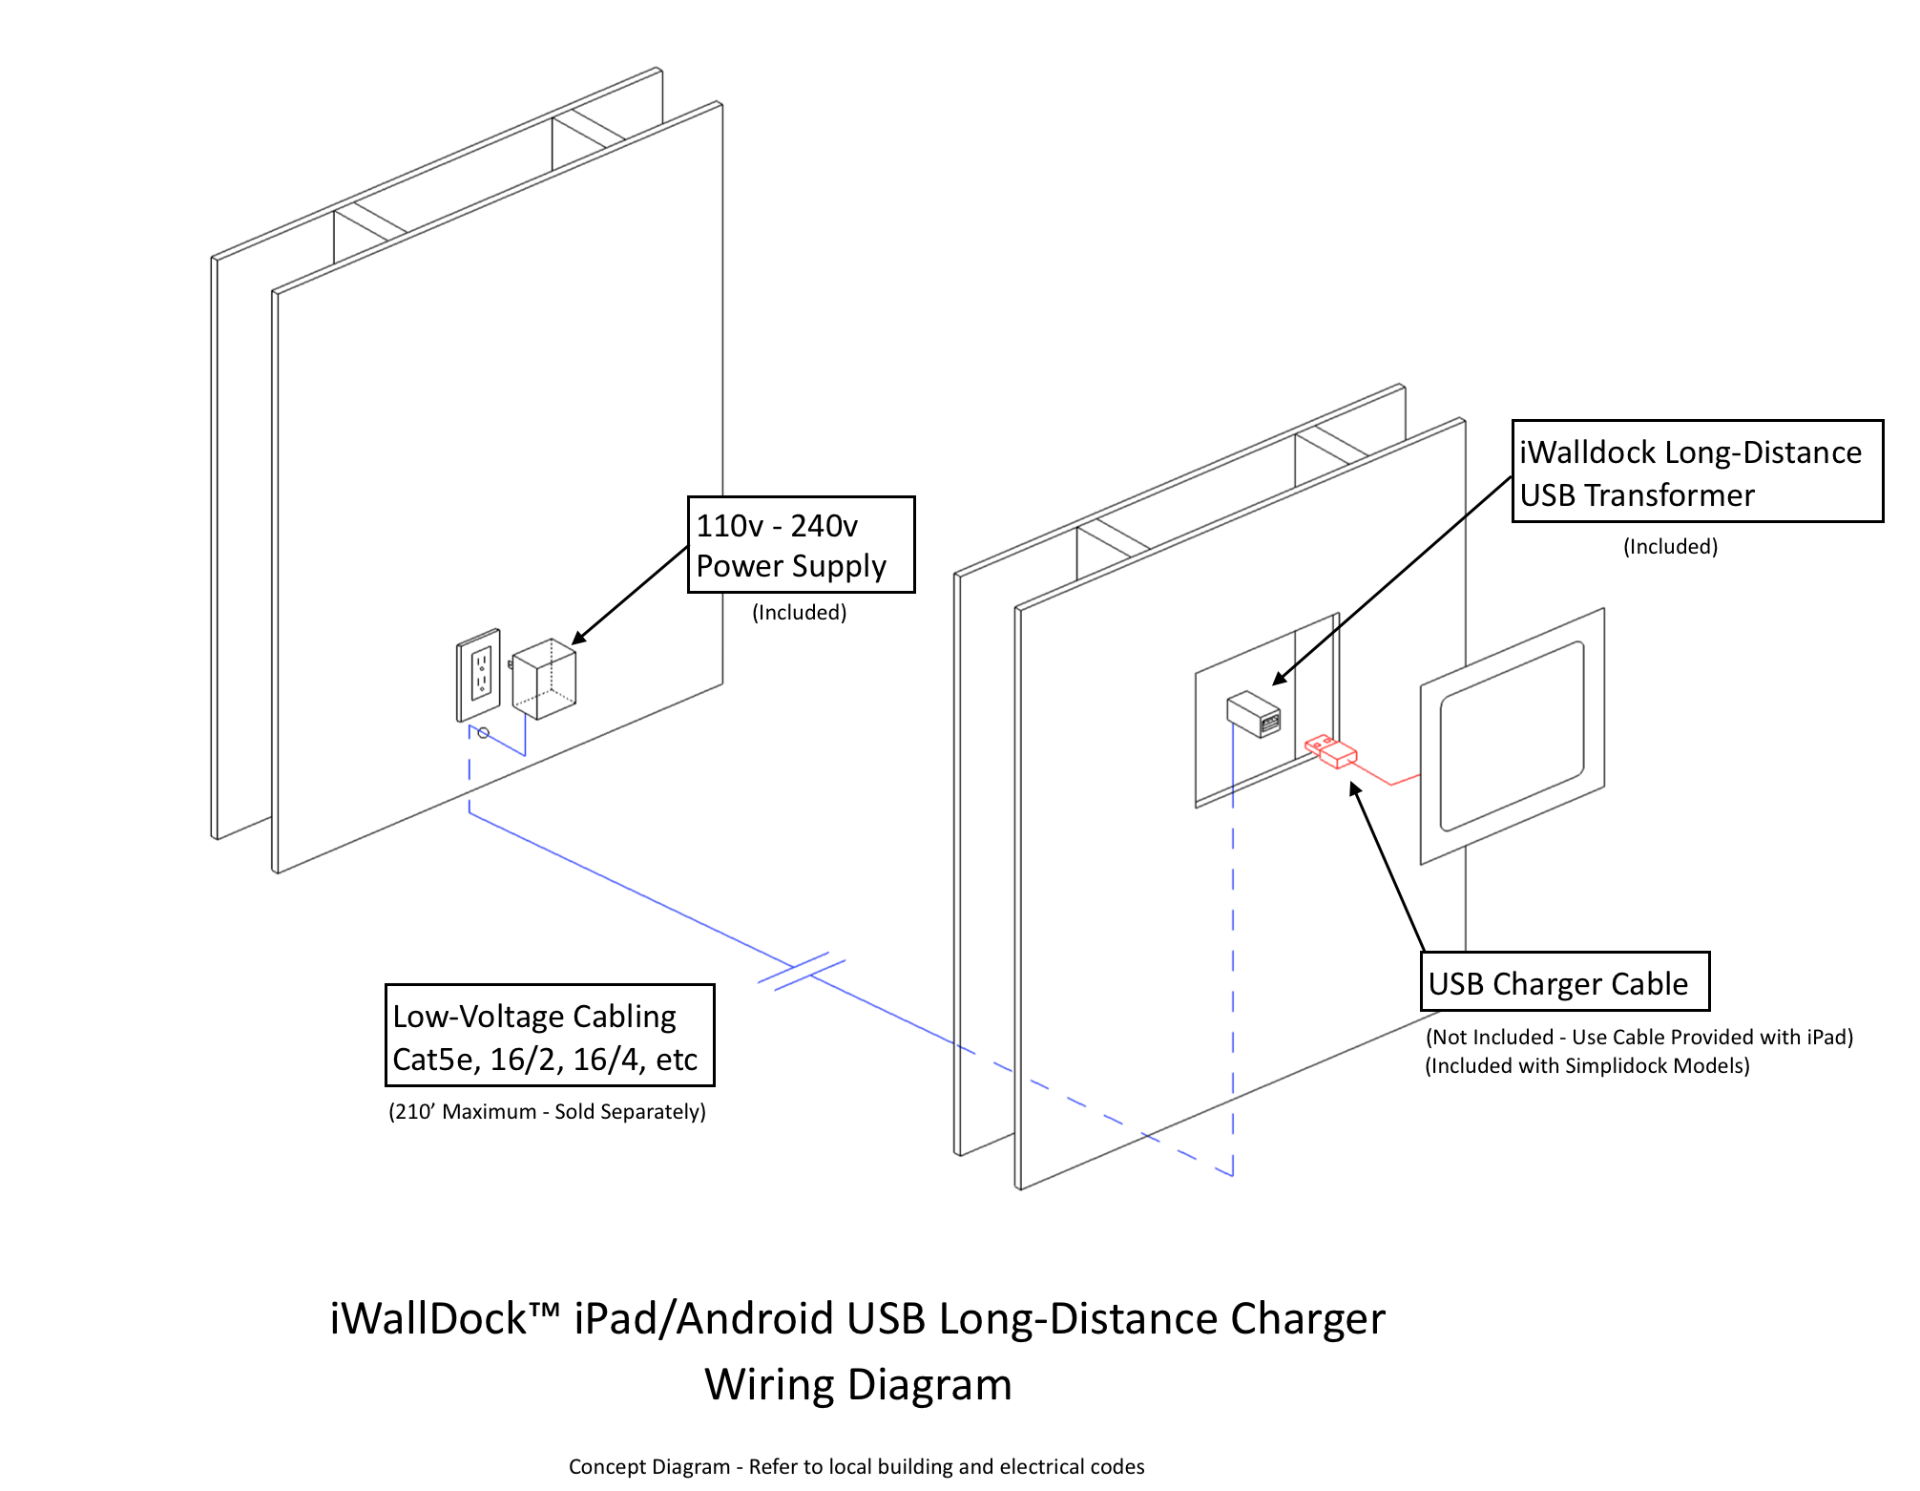 4 Wire Usb Diagram Wiring Library Phone Charger Iwalldock 2 Charging Kit In Wall Tablet Mount Dock